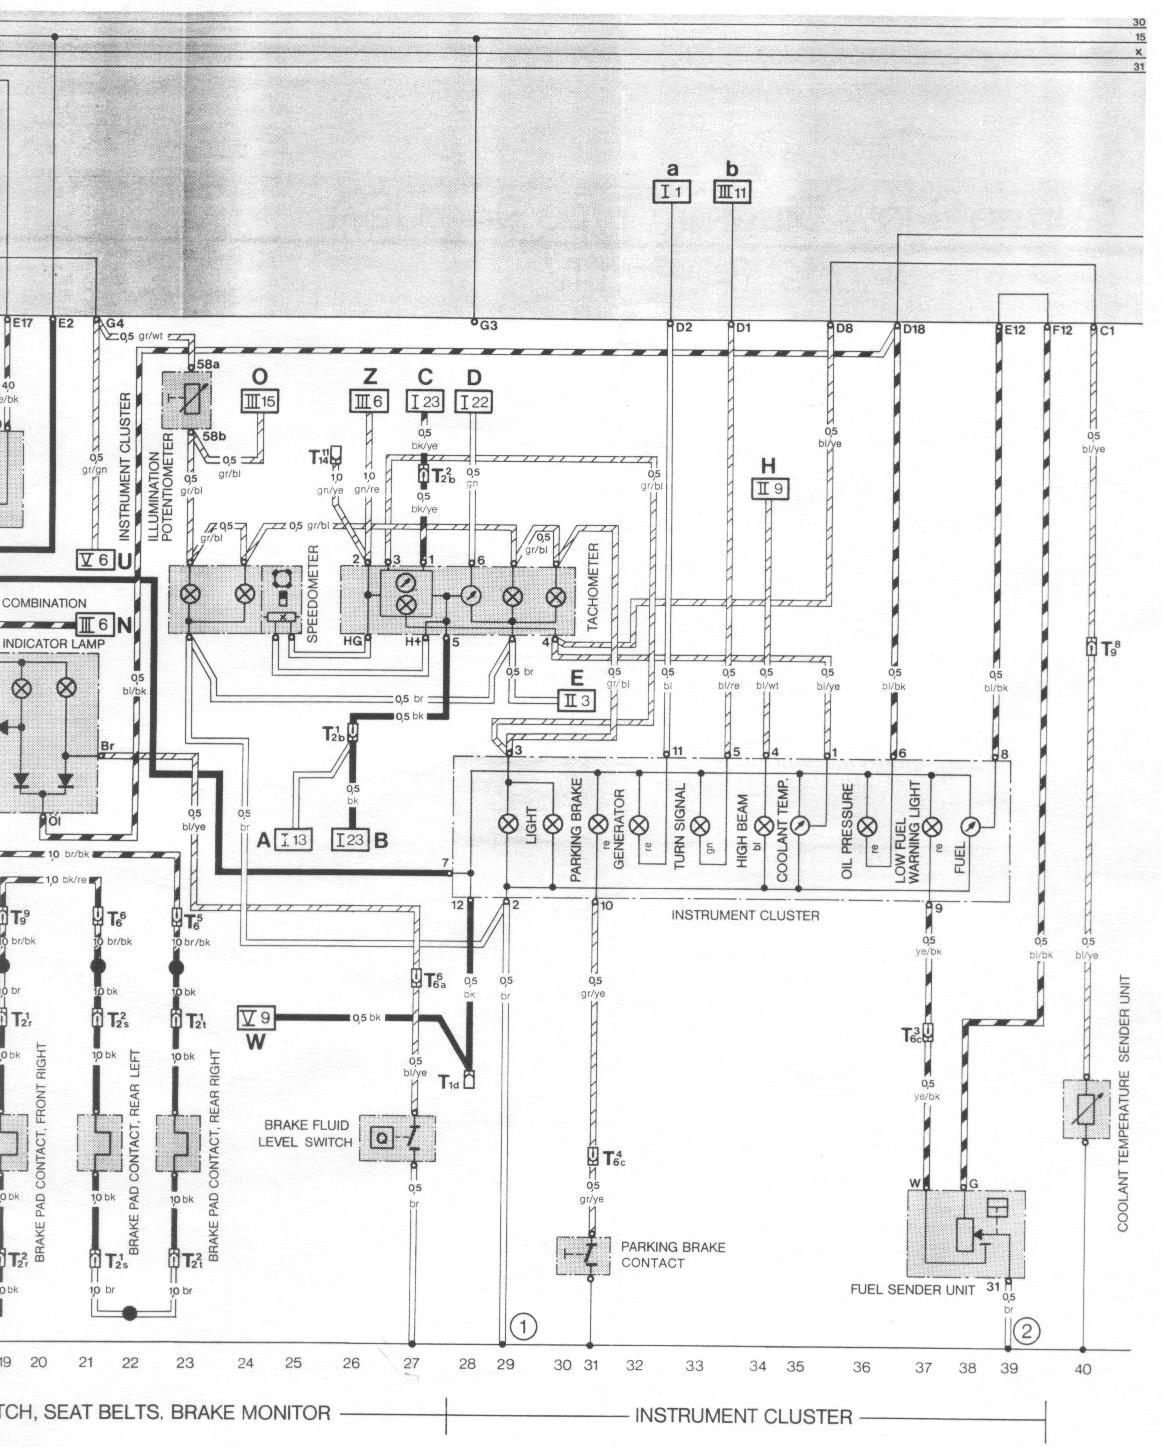 Porsche 928 Wiring Diagram 1986 Just Another Blog Of 1987 911 Engine Starter Data Rh 6 Reisen Fuer Meister De 1984 924s